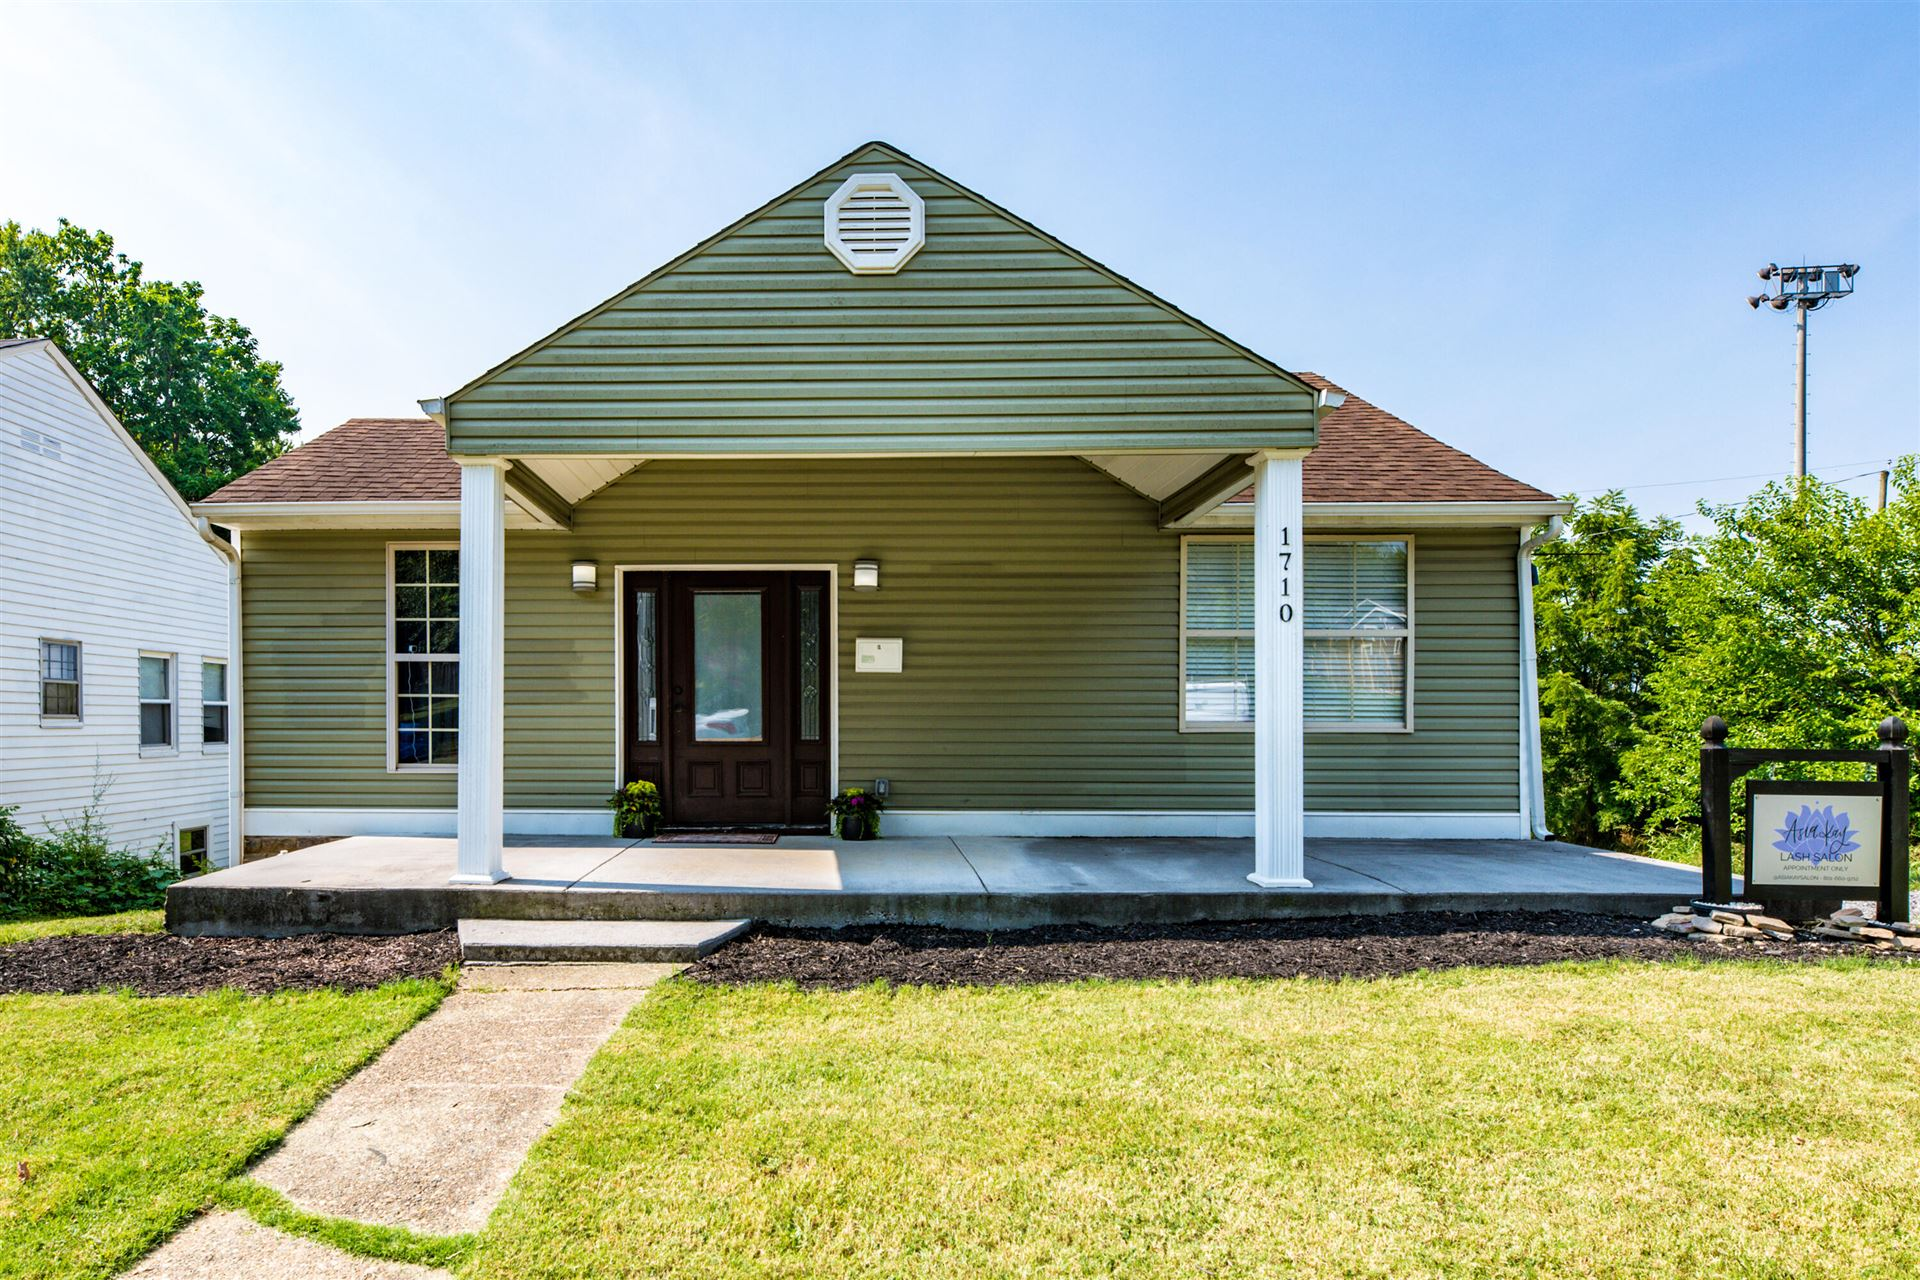 Photo of 1710 Woodbine Ave, Knoxville, TN 37917 (MLS # 1162306)